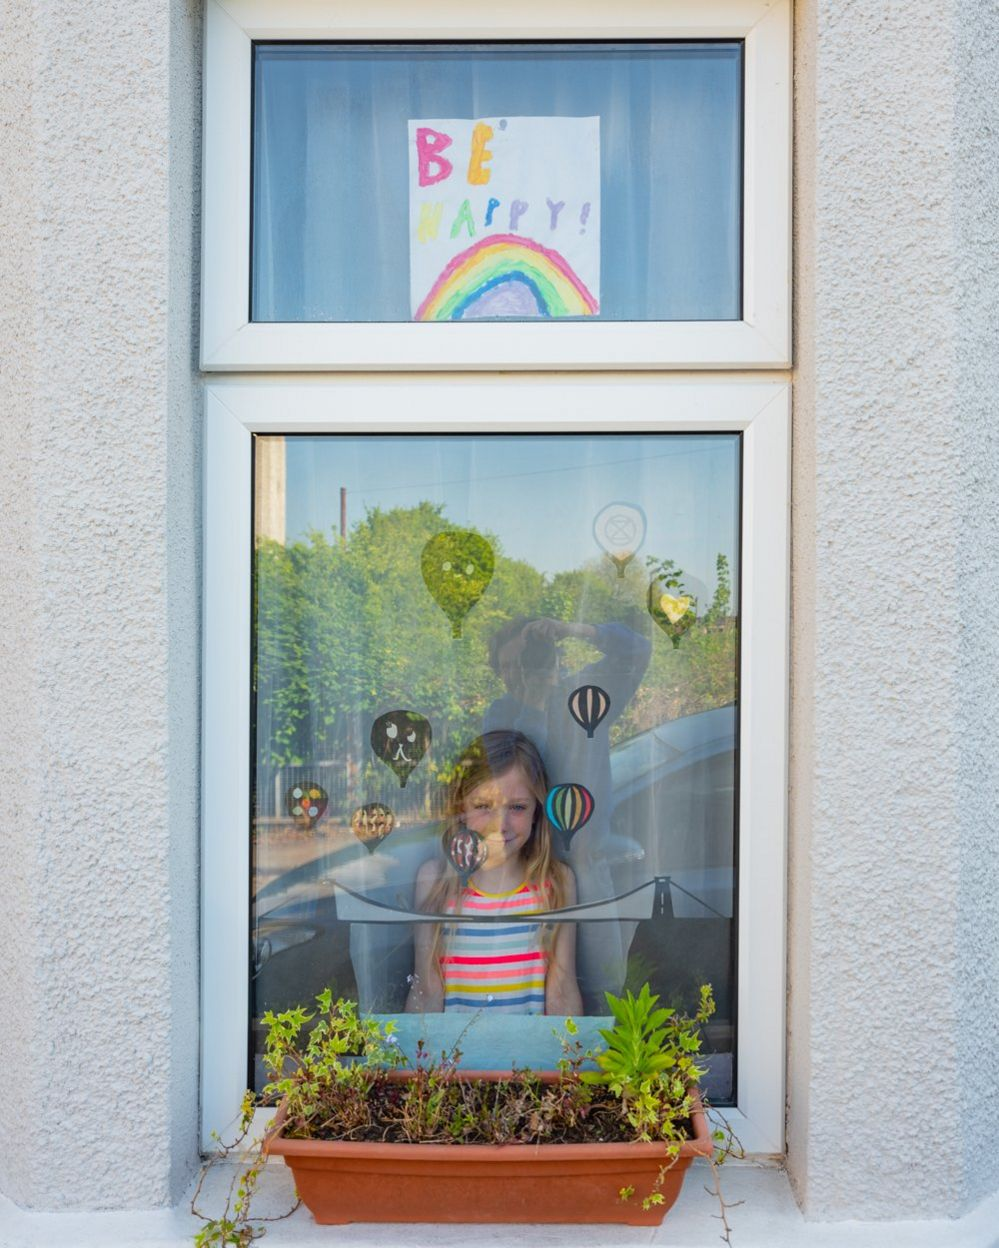 Alice at the window